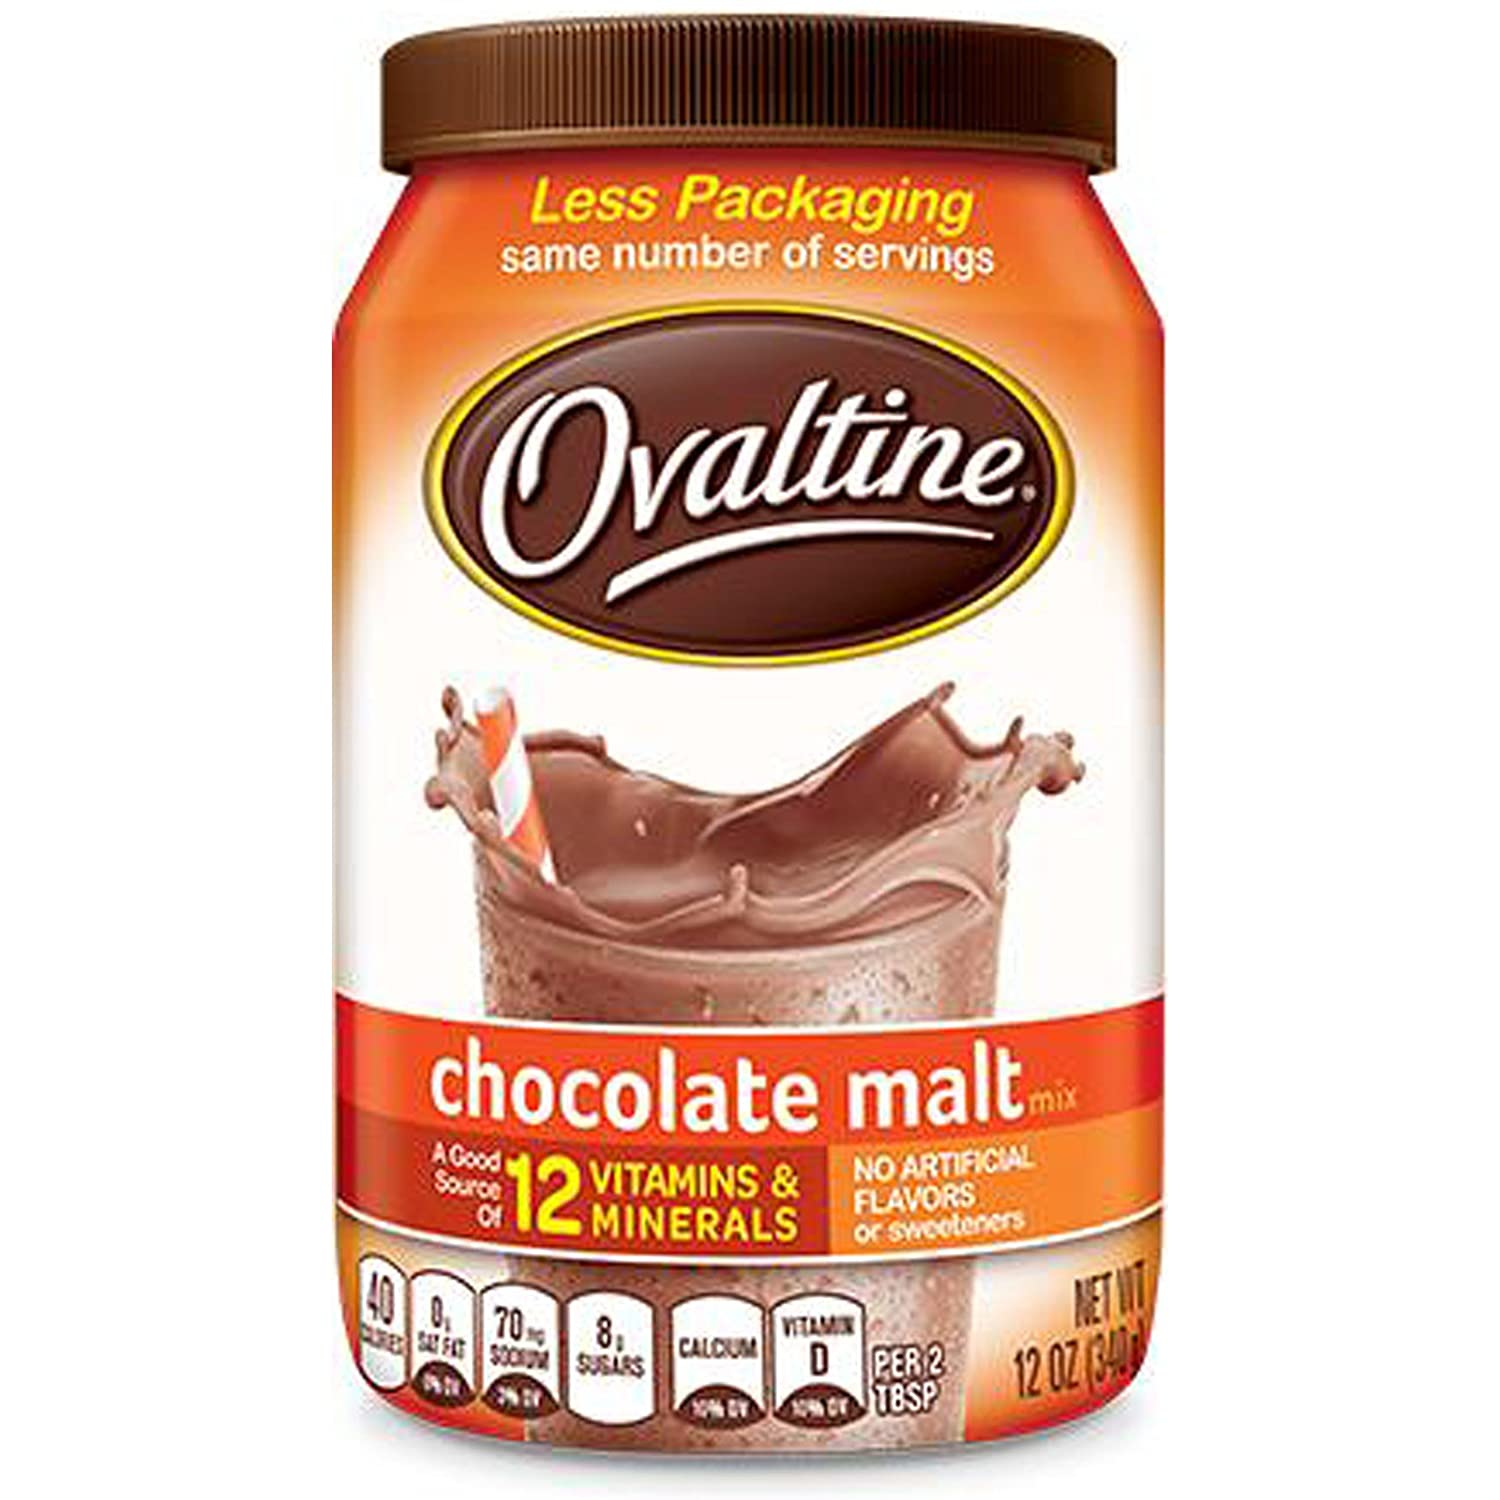 Amazon.com : Nestle Foods Ovaltine Chocolate Malt, 12 oz : Grocery ...